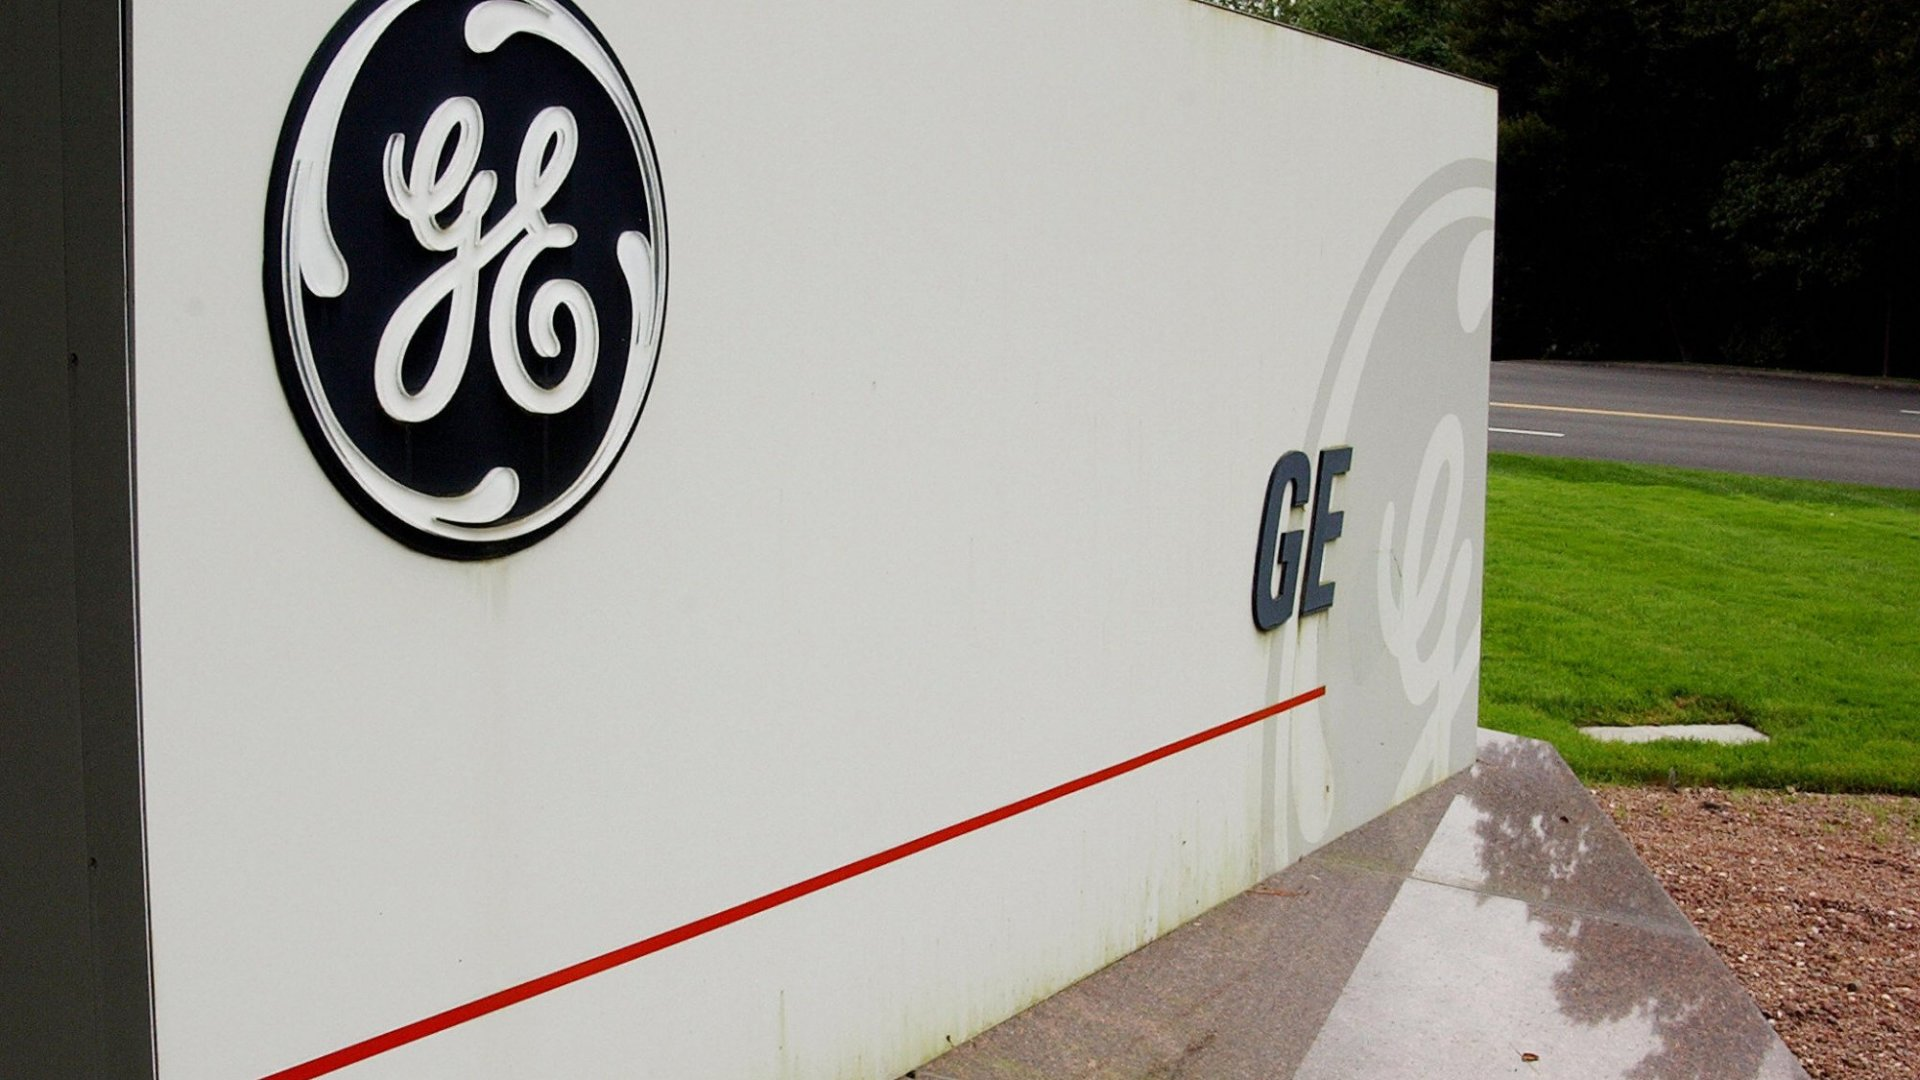 3 Lessons Every Leader Can Learn from GE's Downfall